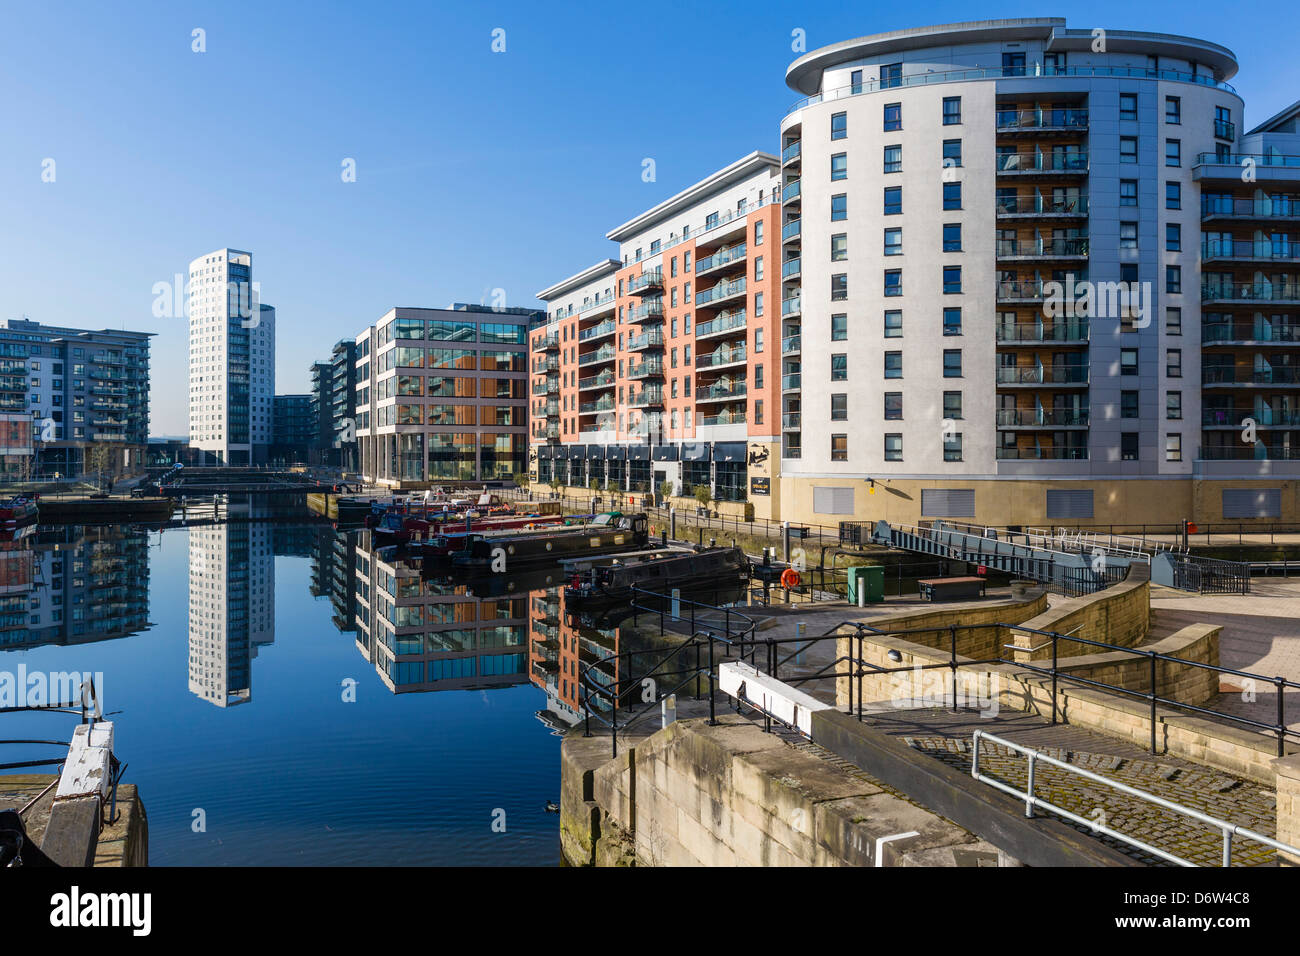 Waterfront Apartment blocks in Clarence Dock, Leeds, West ...